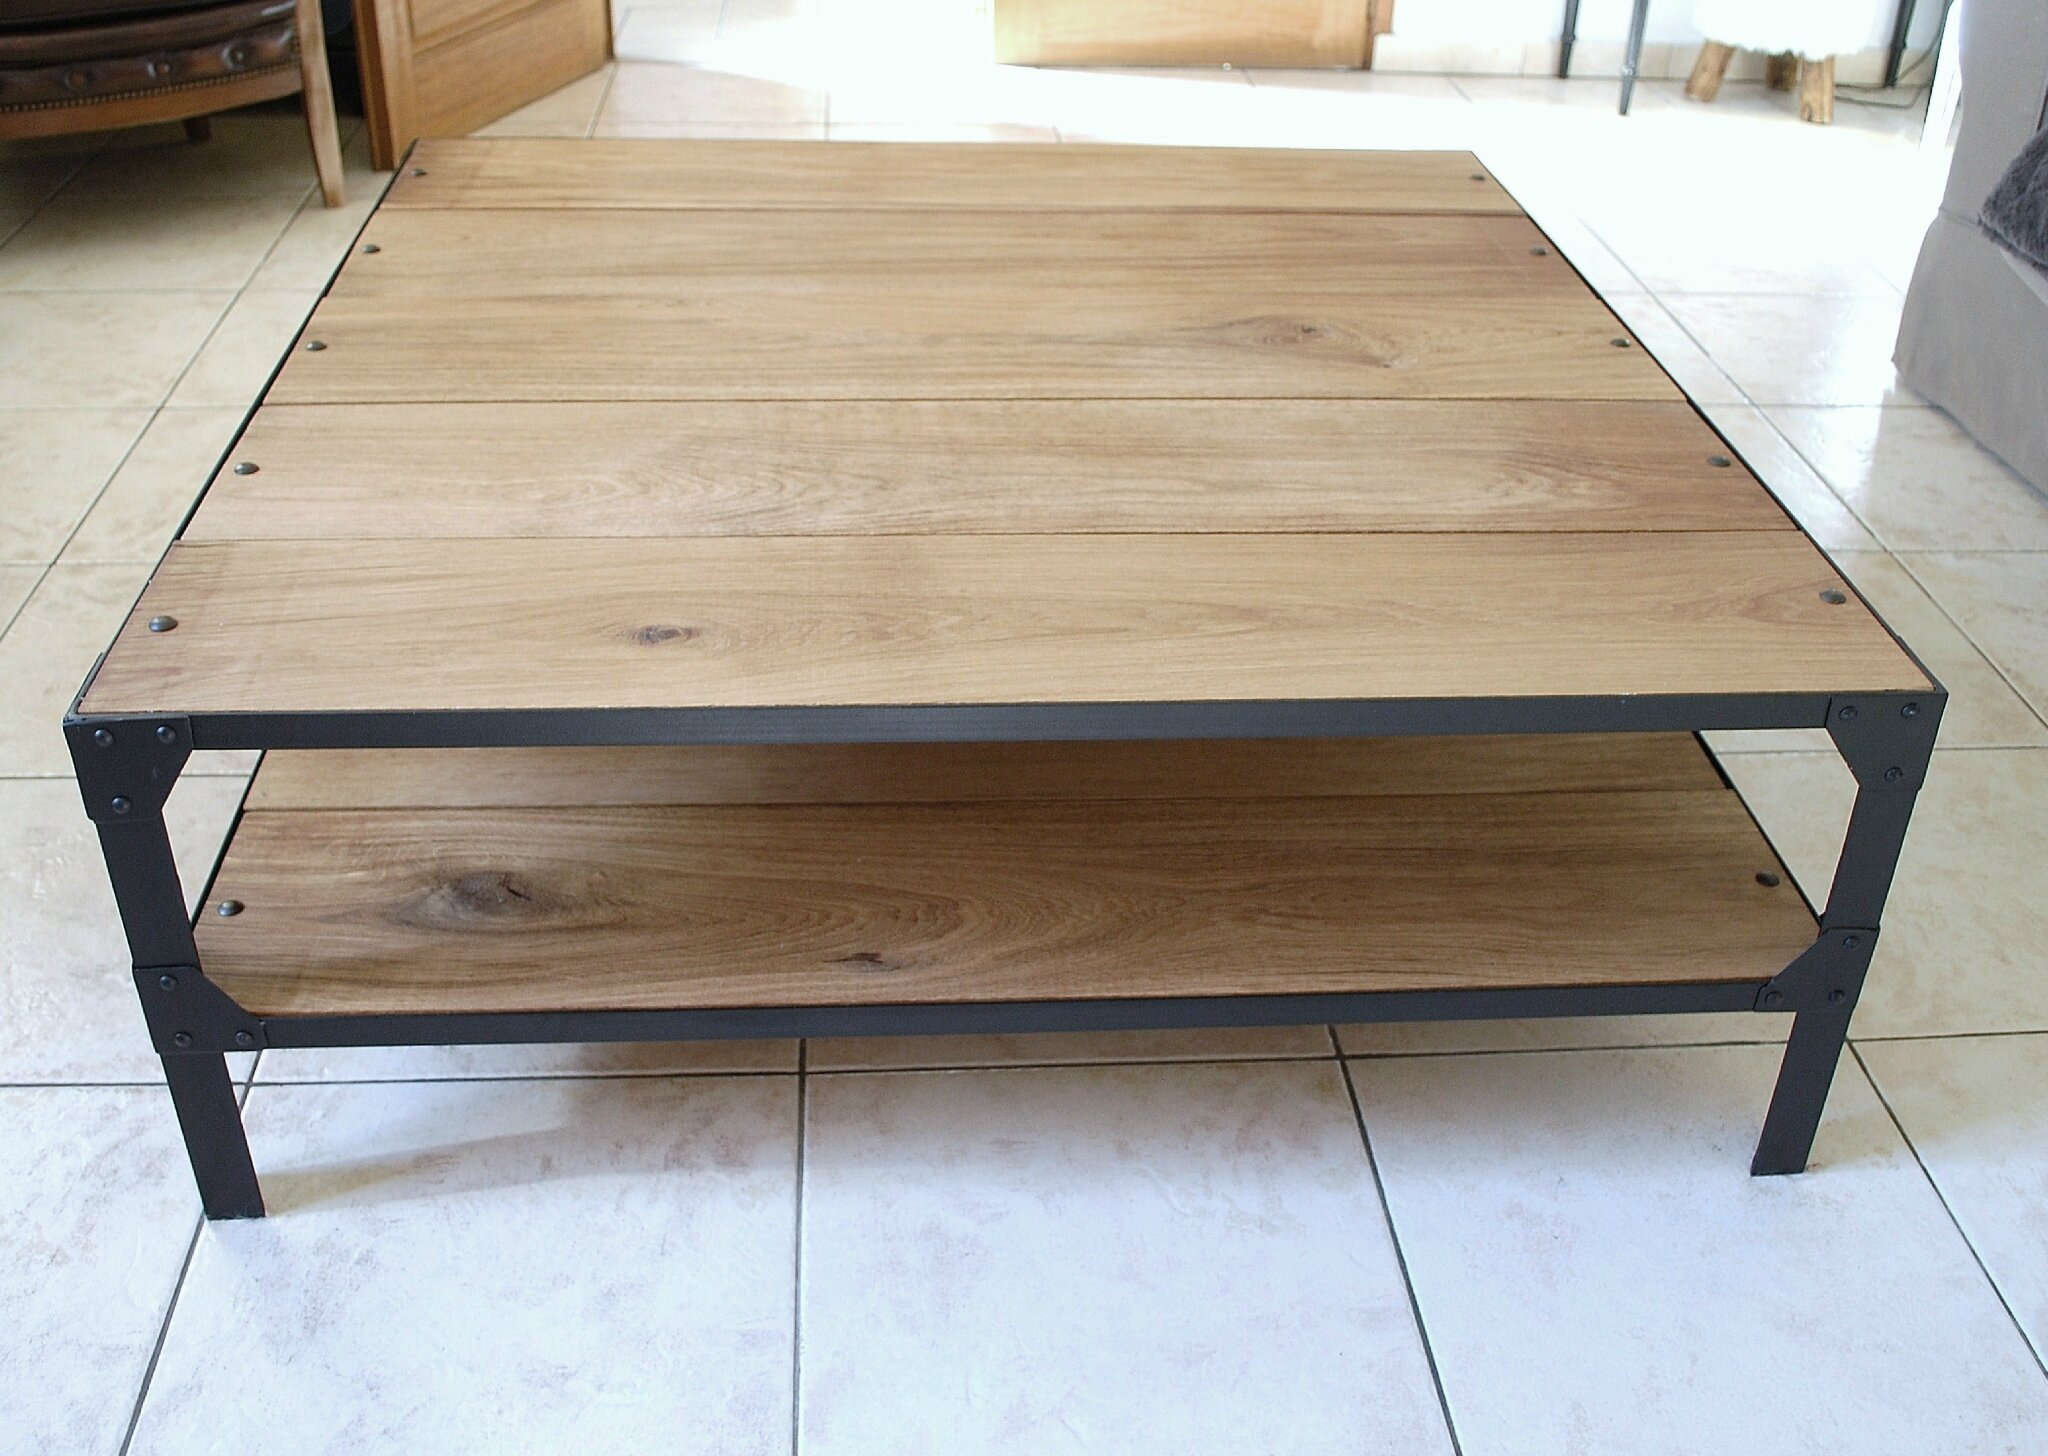 Table basse en chªne L atelier Broc&loft